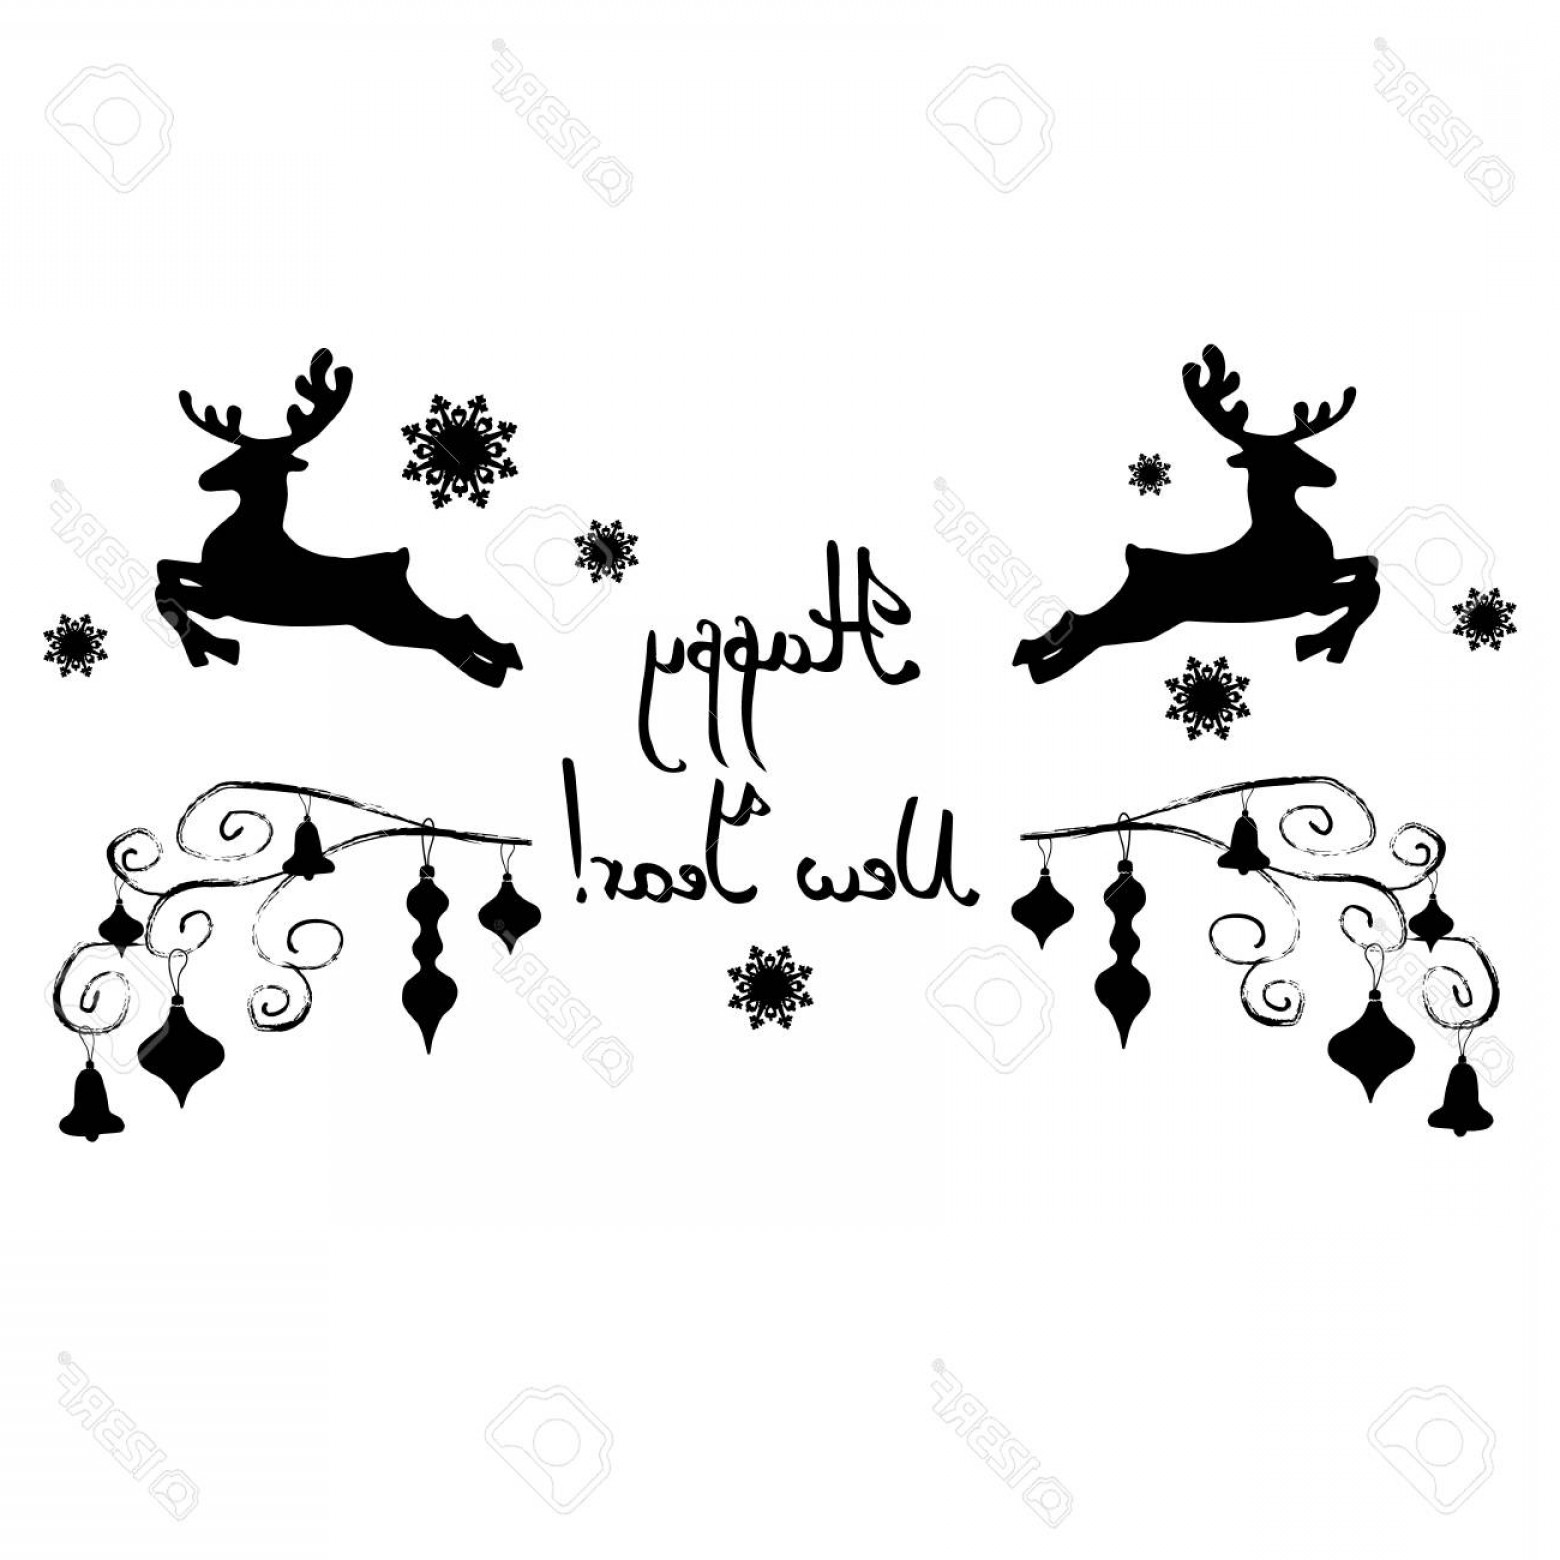 Black And White Holiday Deer Vector: Photostock Vector Deer Christmas Vector Illustration Holiday Design Winter Animal Background Celebration